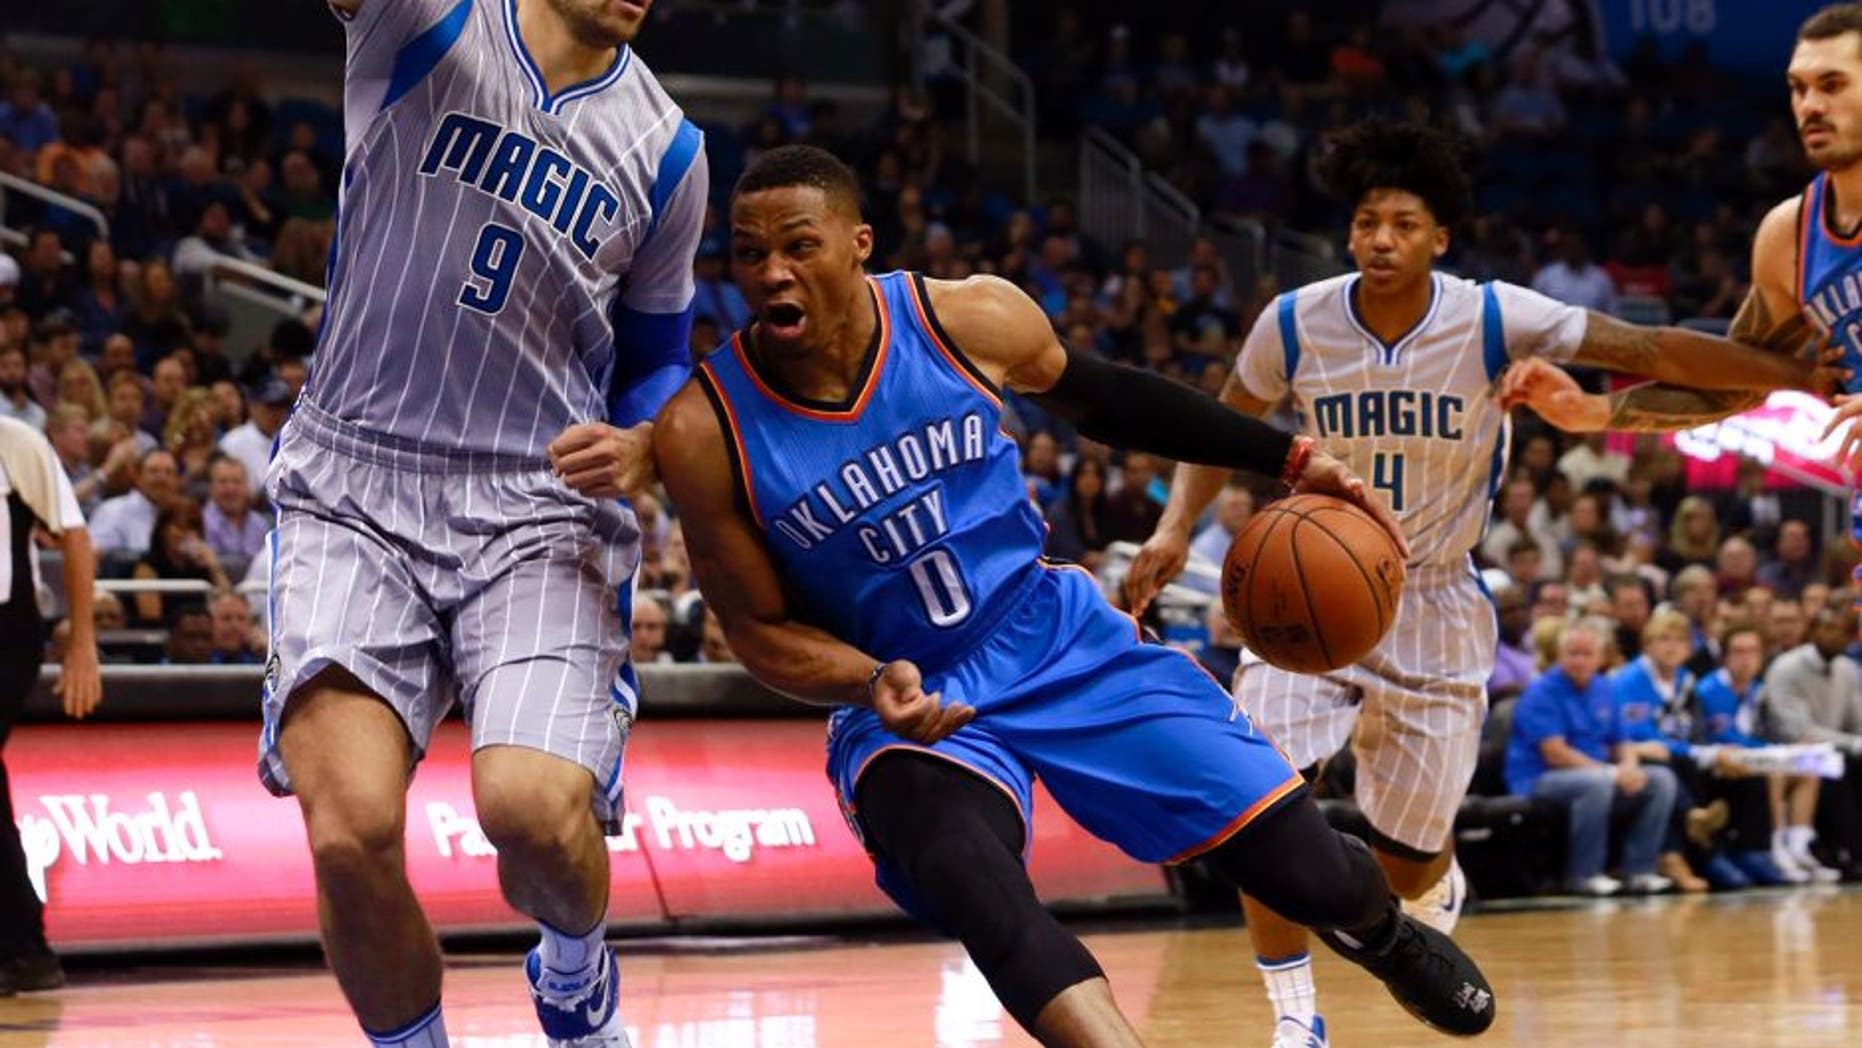 Oct 30, 2015; Orlando, FL, USA; Oklahoma City Thunder guard Russell Westbrook (0) drives to the basket as Orlando Magic center Nikola Vucevic (9) defends during the first quarter at Amway Center. Mandatory Credit: Kim Klement-USA TODAY Sports